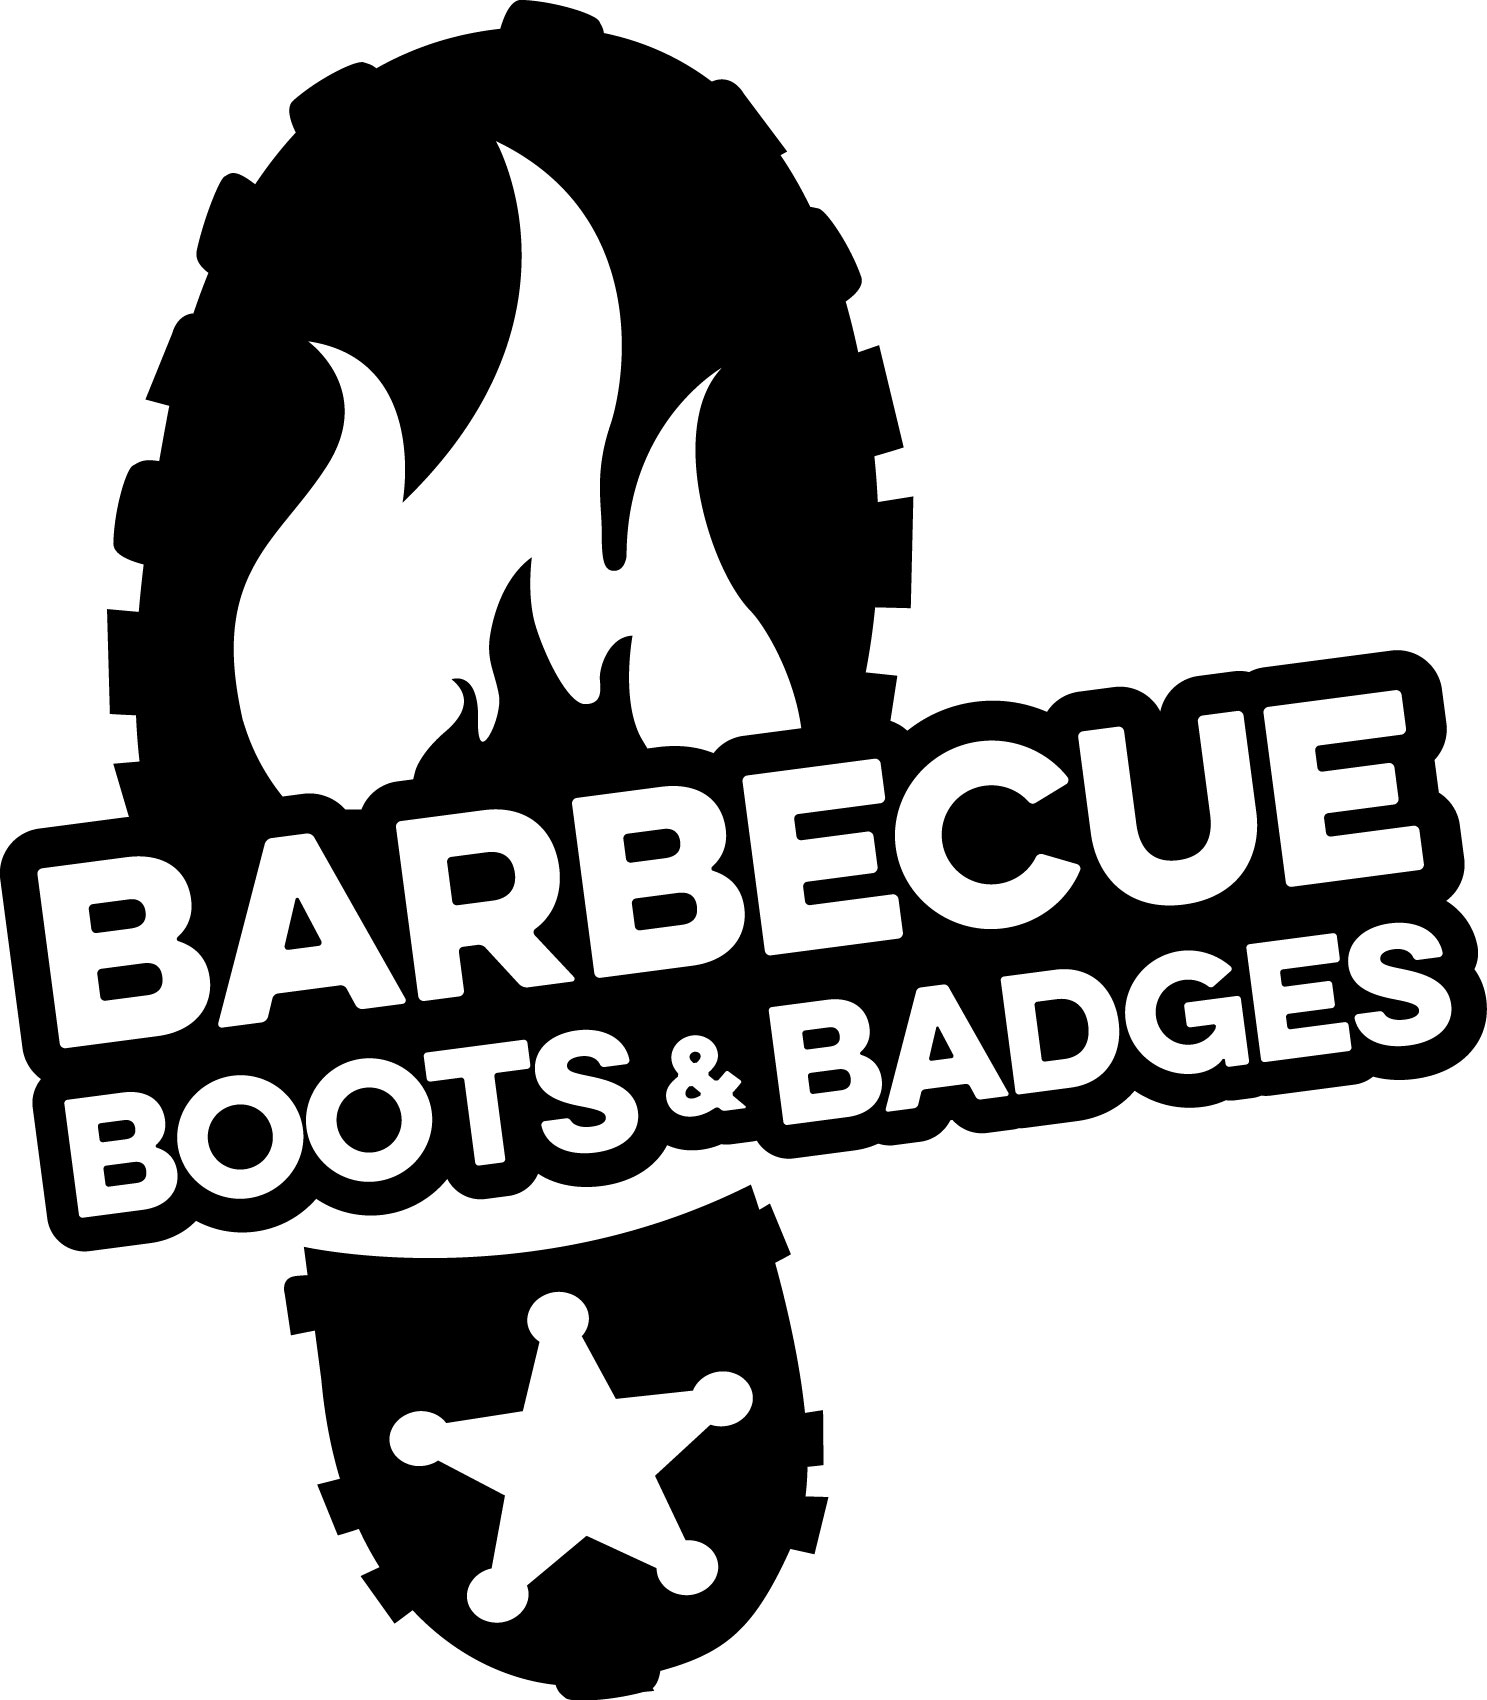 'Battle of the Pitmasters' Hosted by Barbecue, Boots & Badges Features Exciting Raffle Prizes, VIP Silent Auction and Free Barbecue for a Year